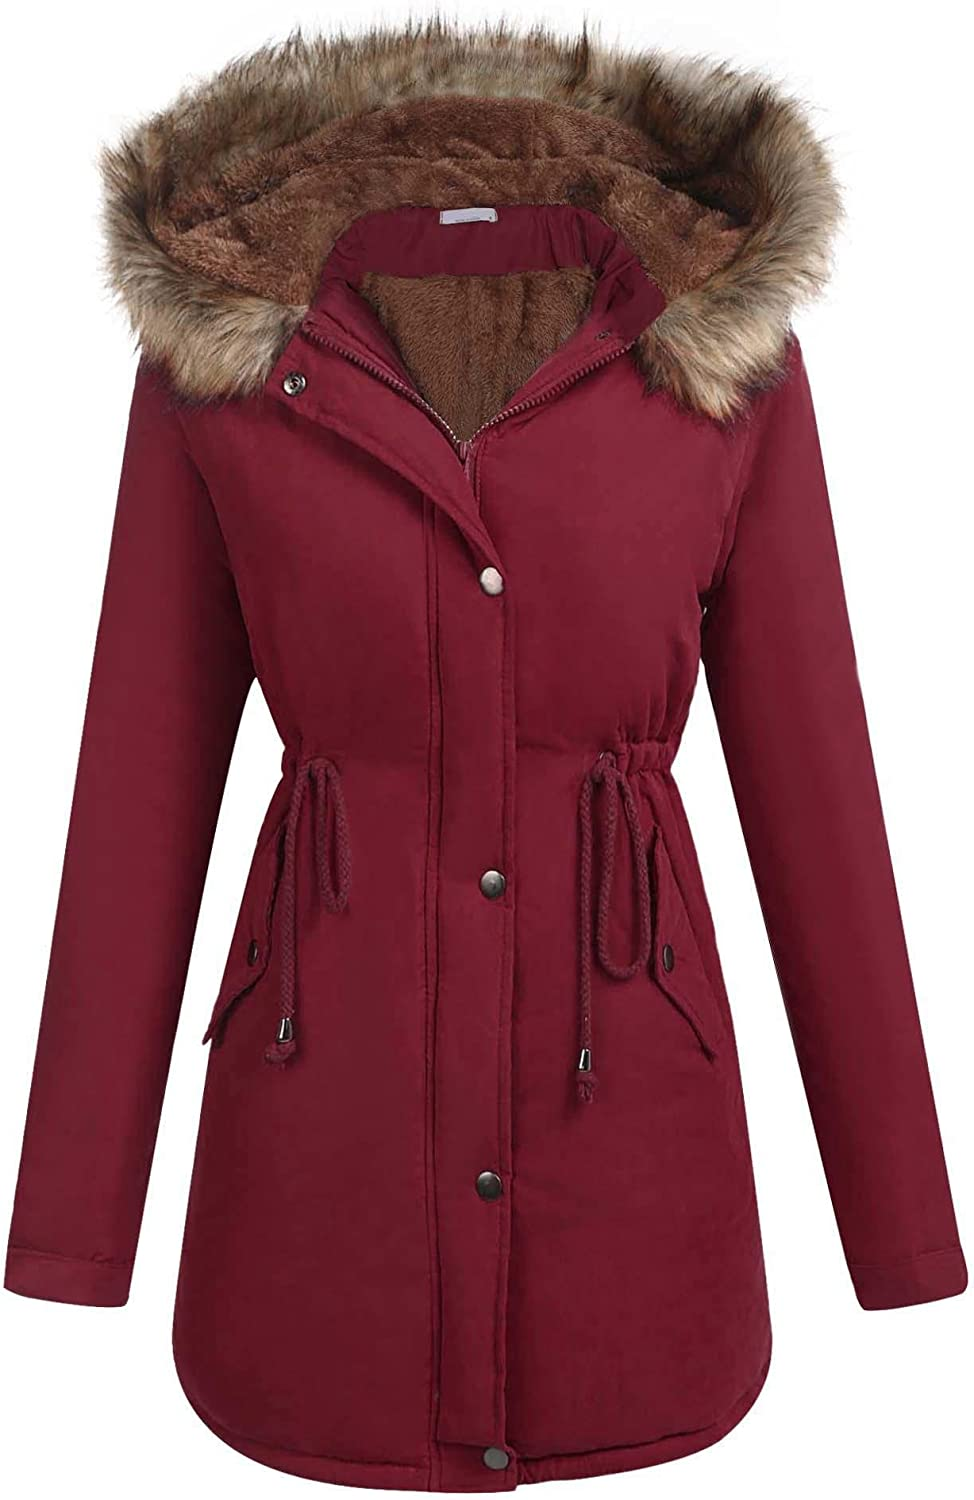 ELESOL Women's Parka Jacket Warm Hooded Winter Anorak Coats Faux Fur Coat